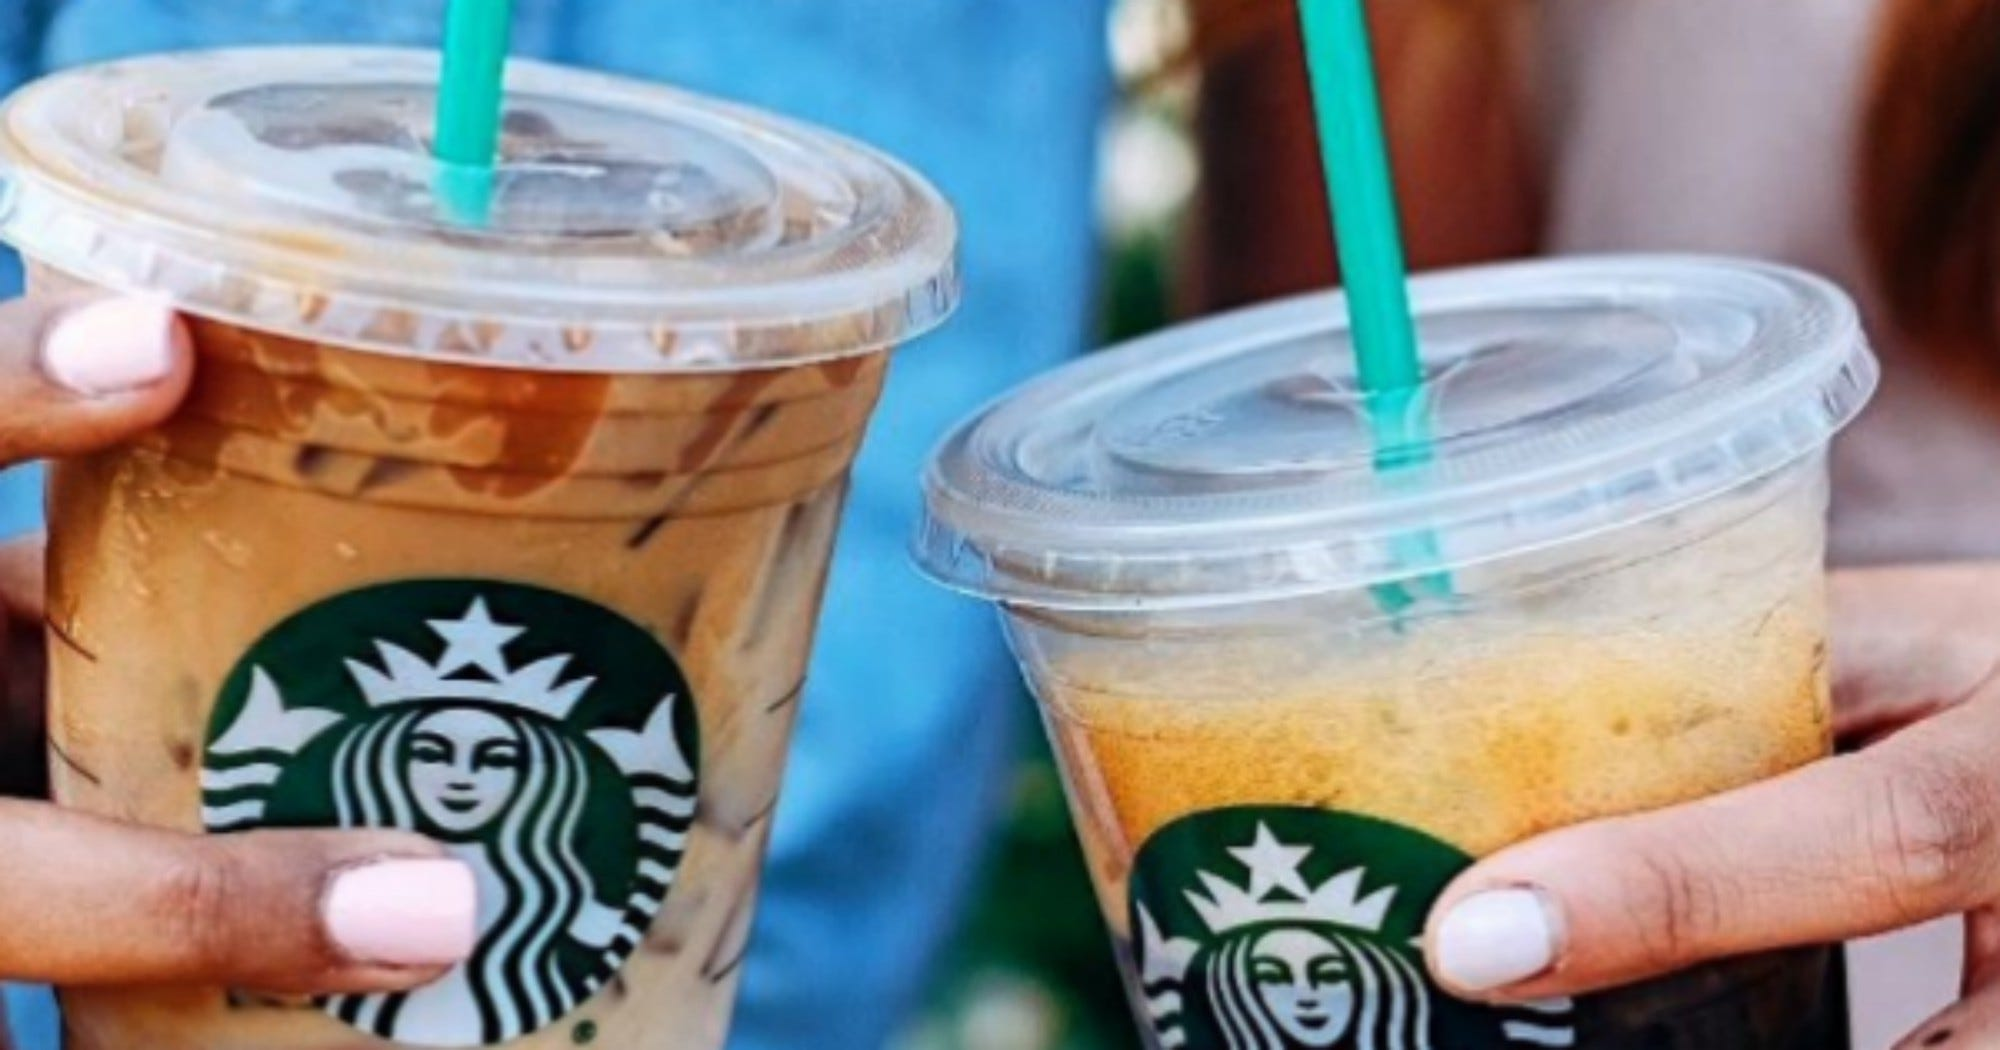 These Two New Starbucks Drinks Will Change The Way You Drink Iced Coffee